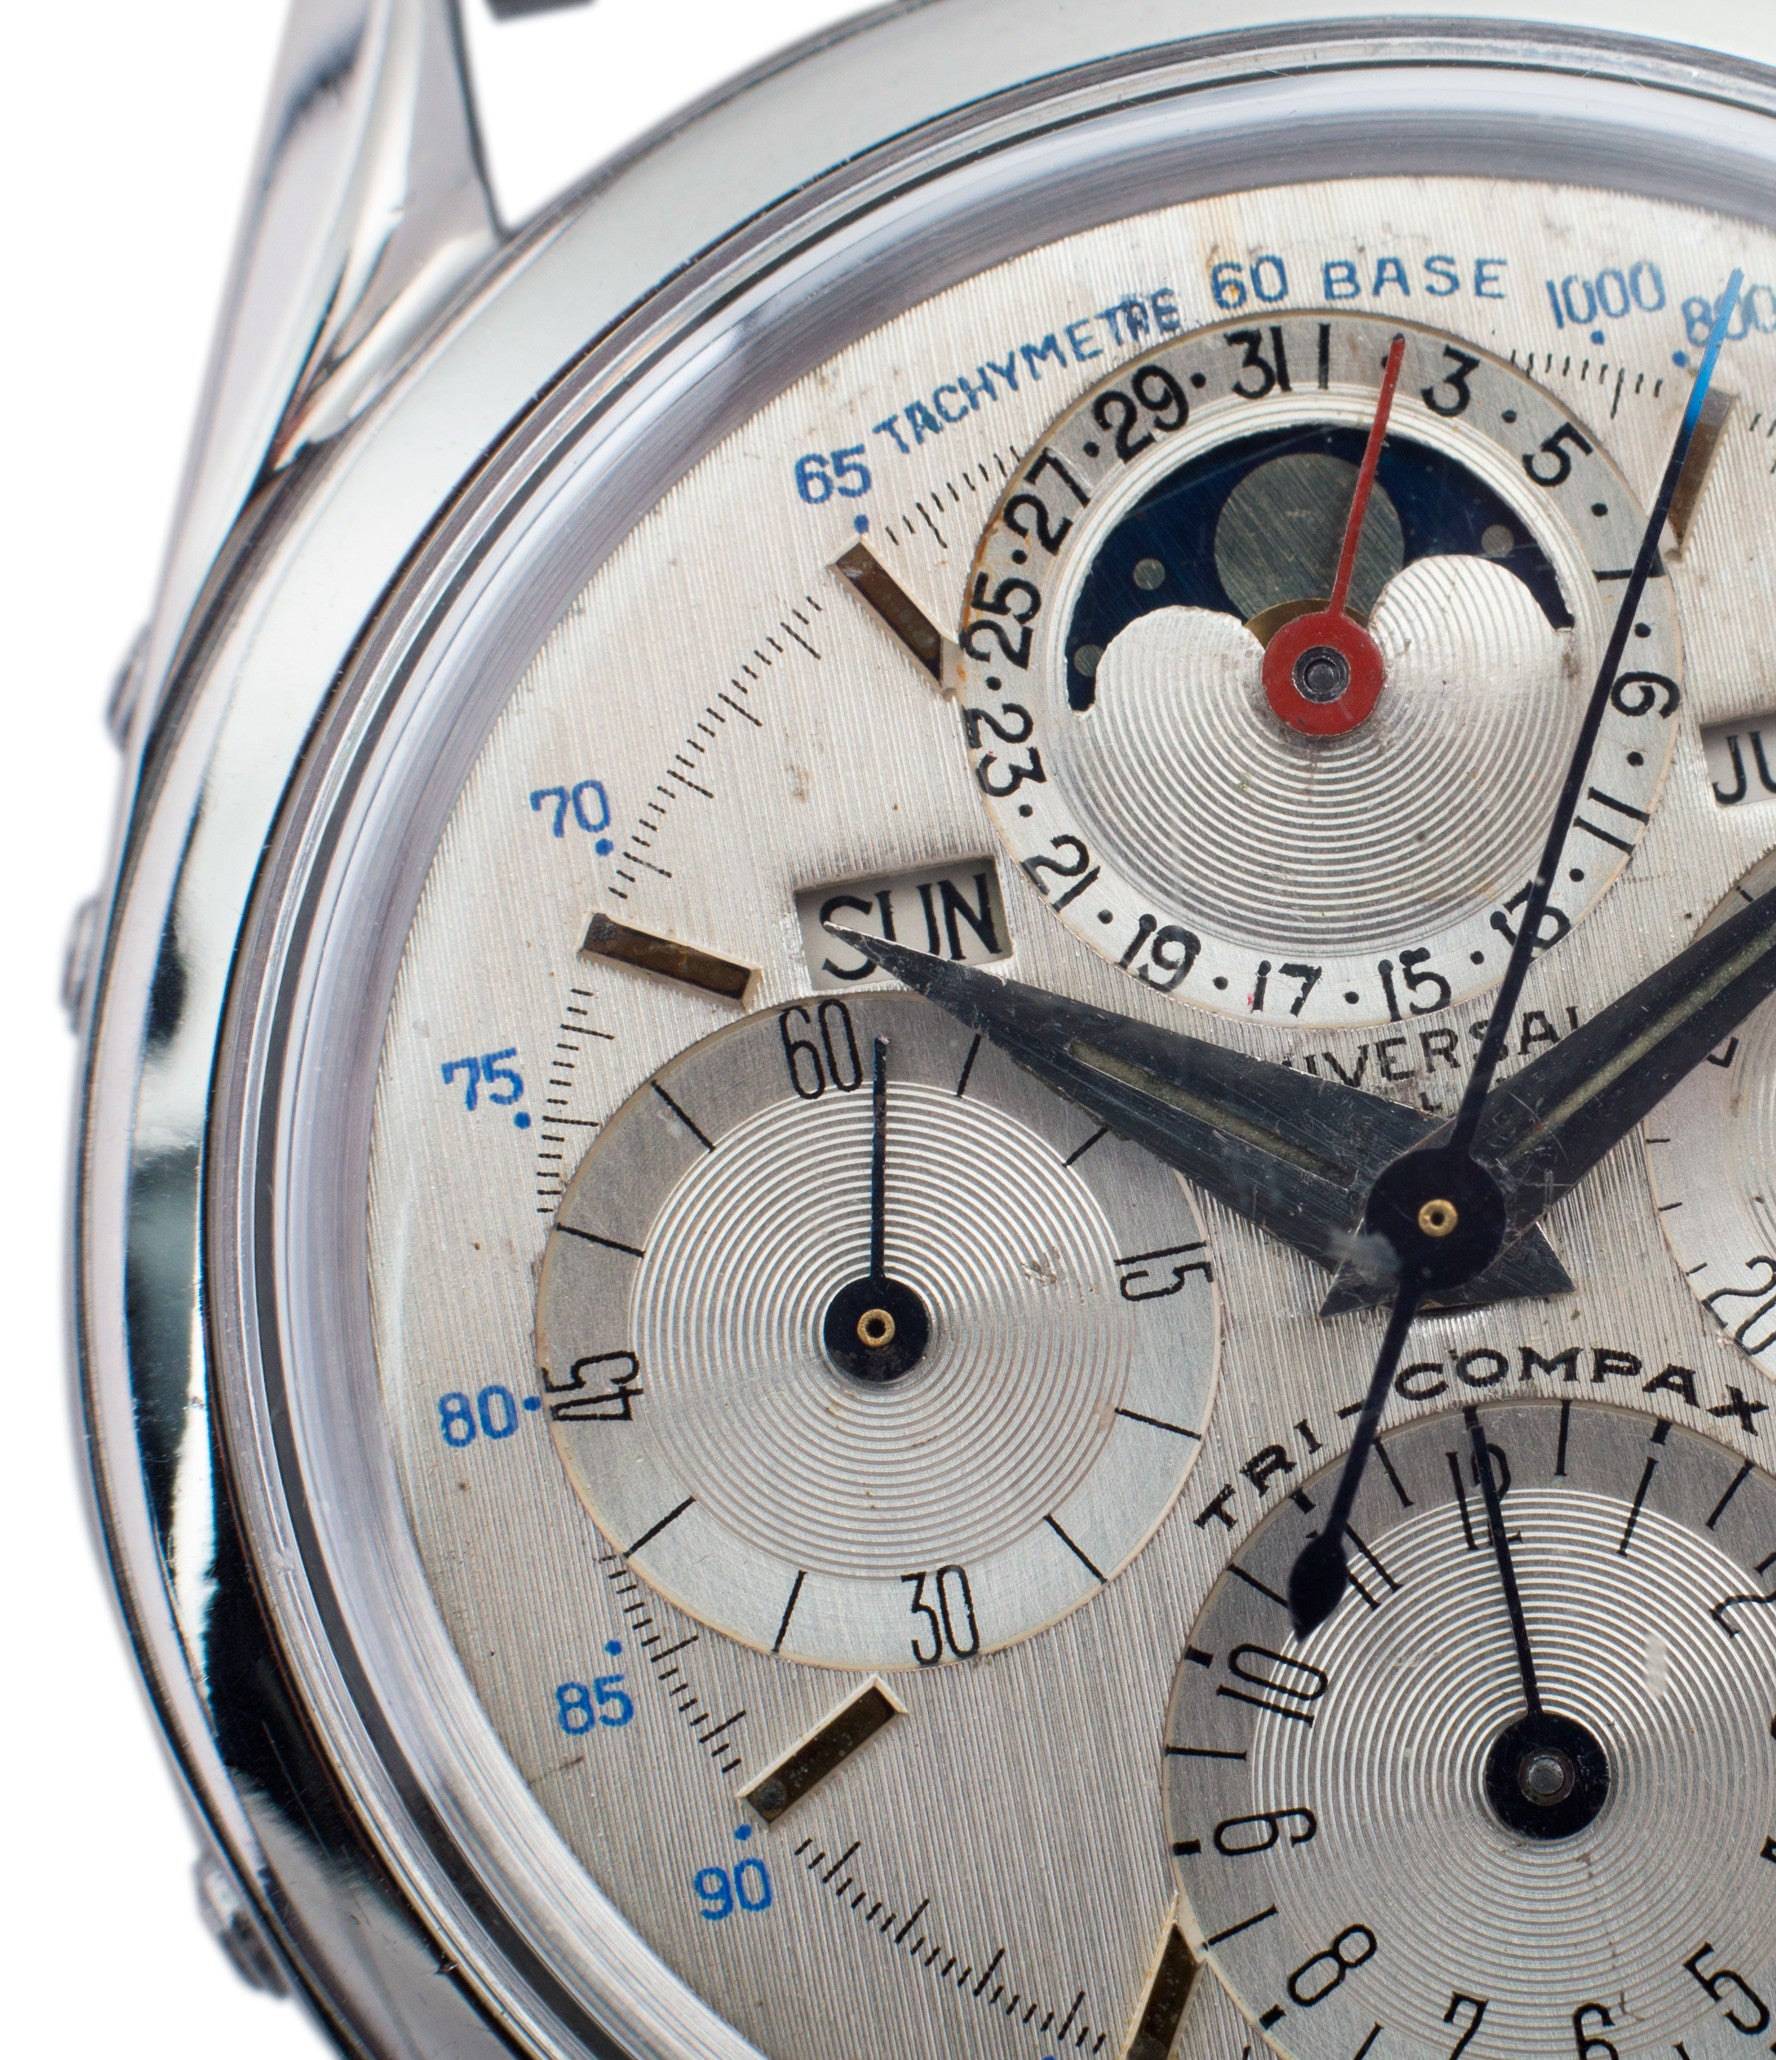 brushed linen silver Universal Geneve 222100/2 Tri-Compax Triple Calendar Moonphase steel chronograph watch for sale online at A Collected Man London rare vintage watch specialist